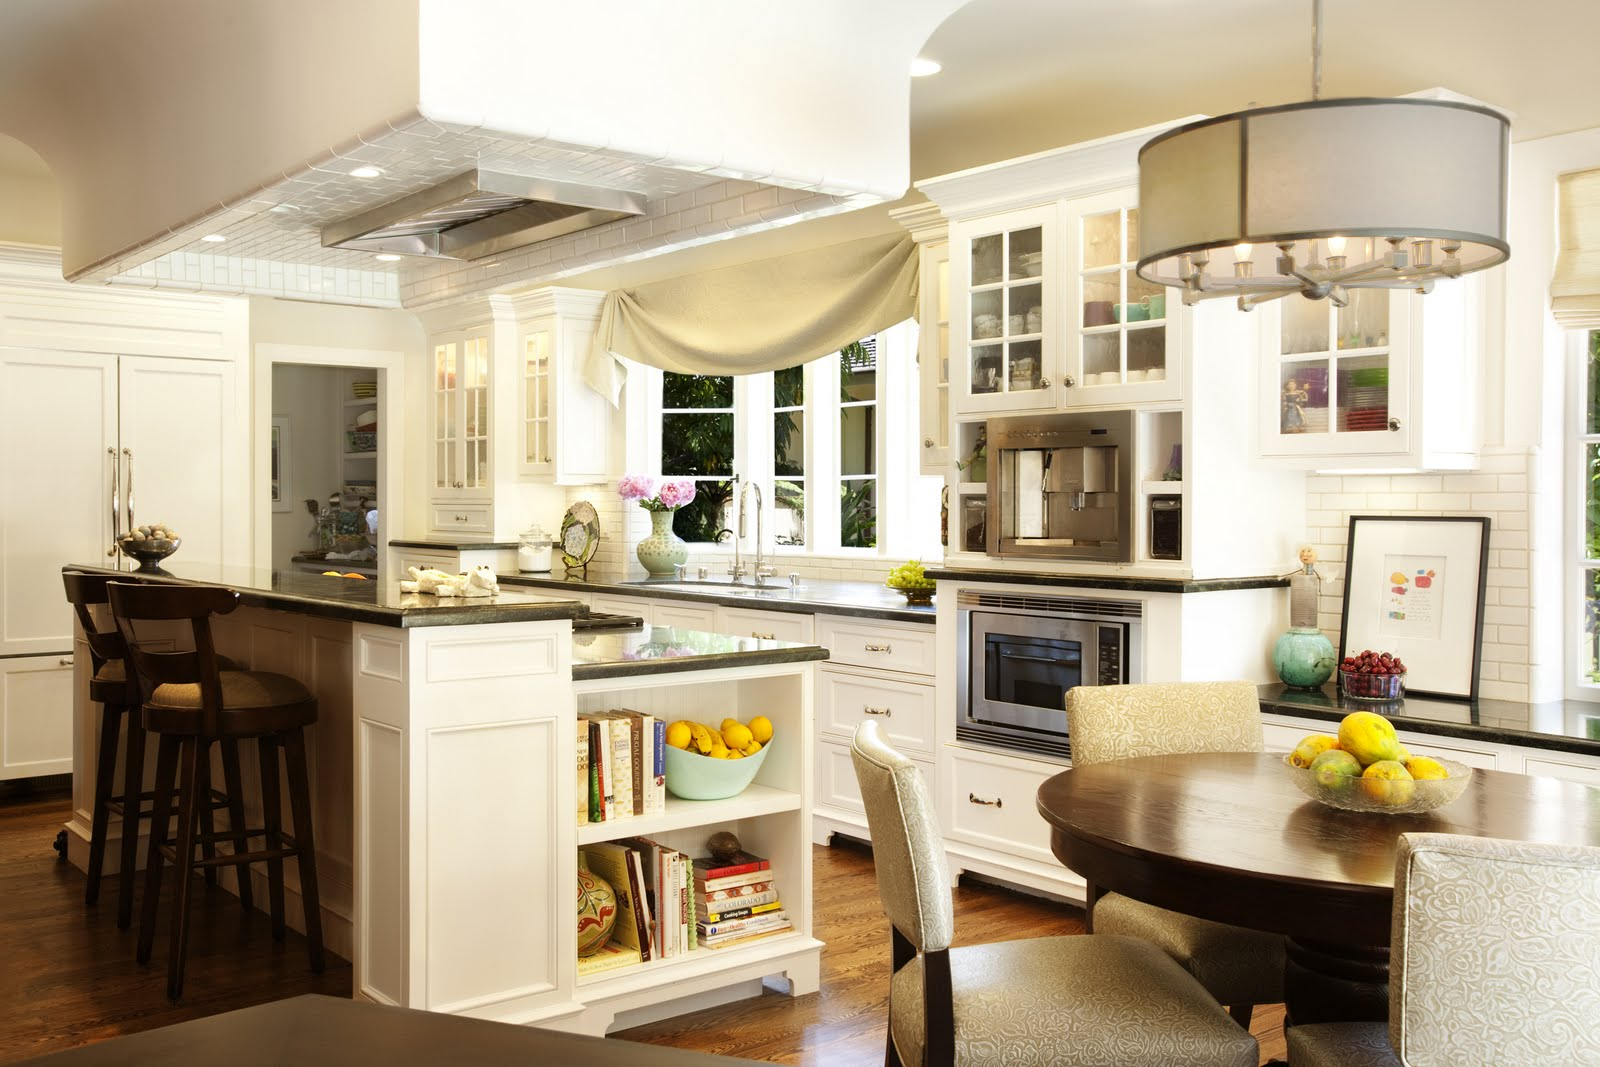 Locally made cabinetry and green soapstone countertops pair well with